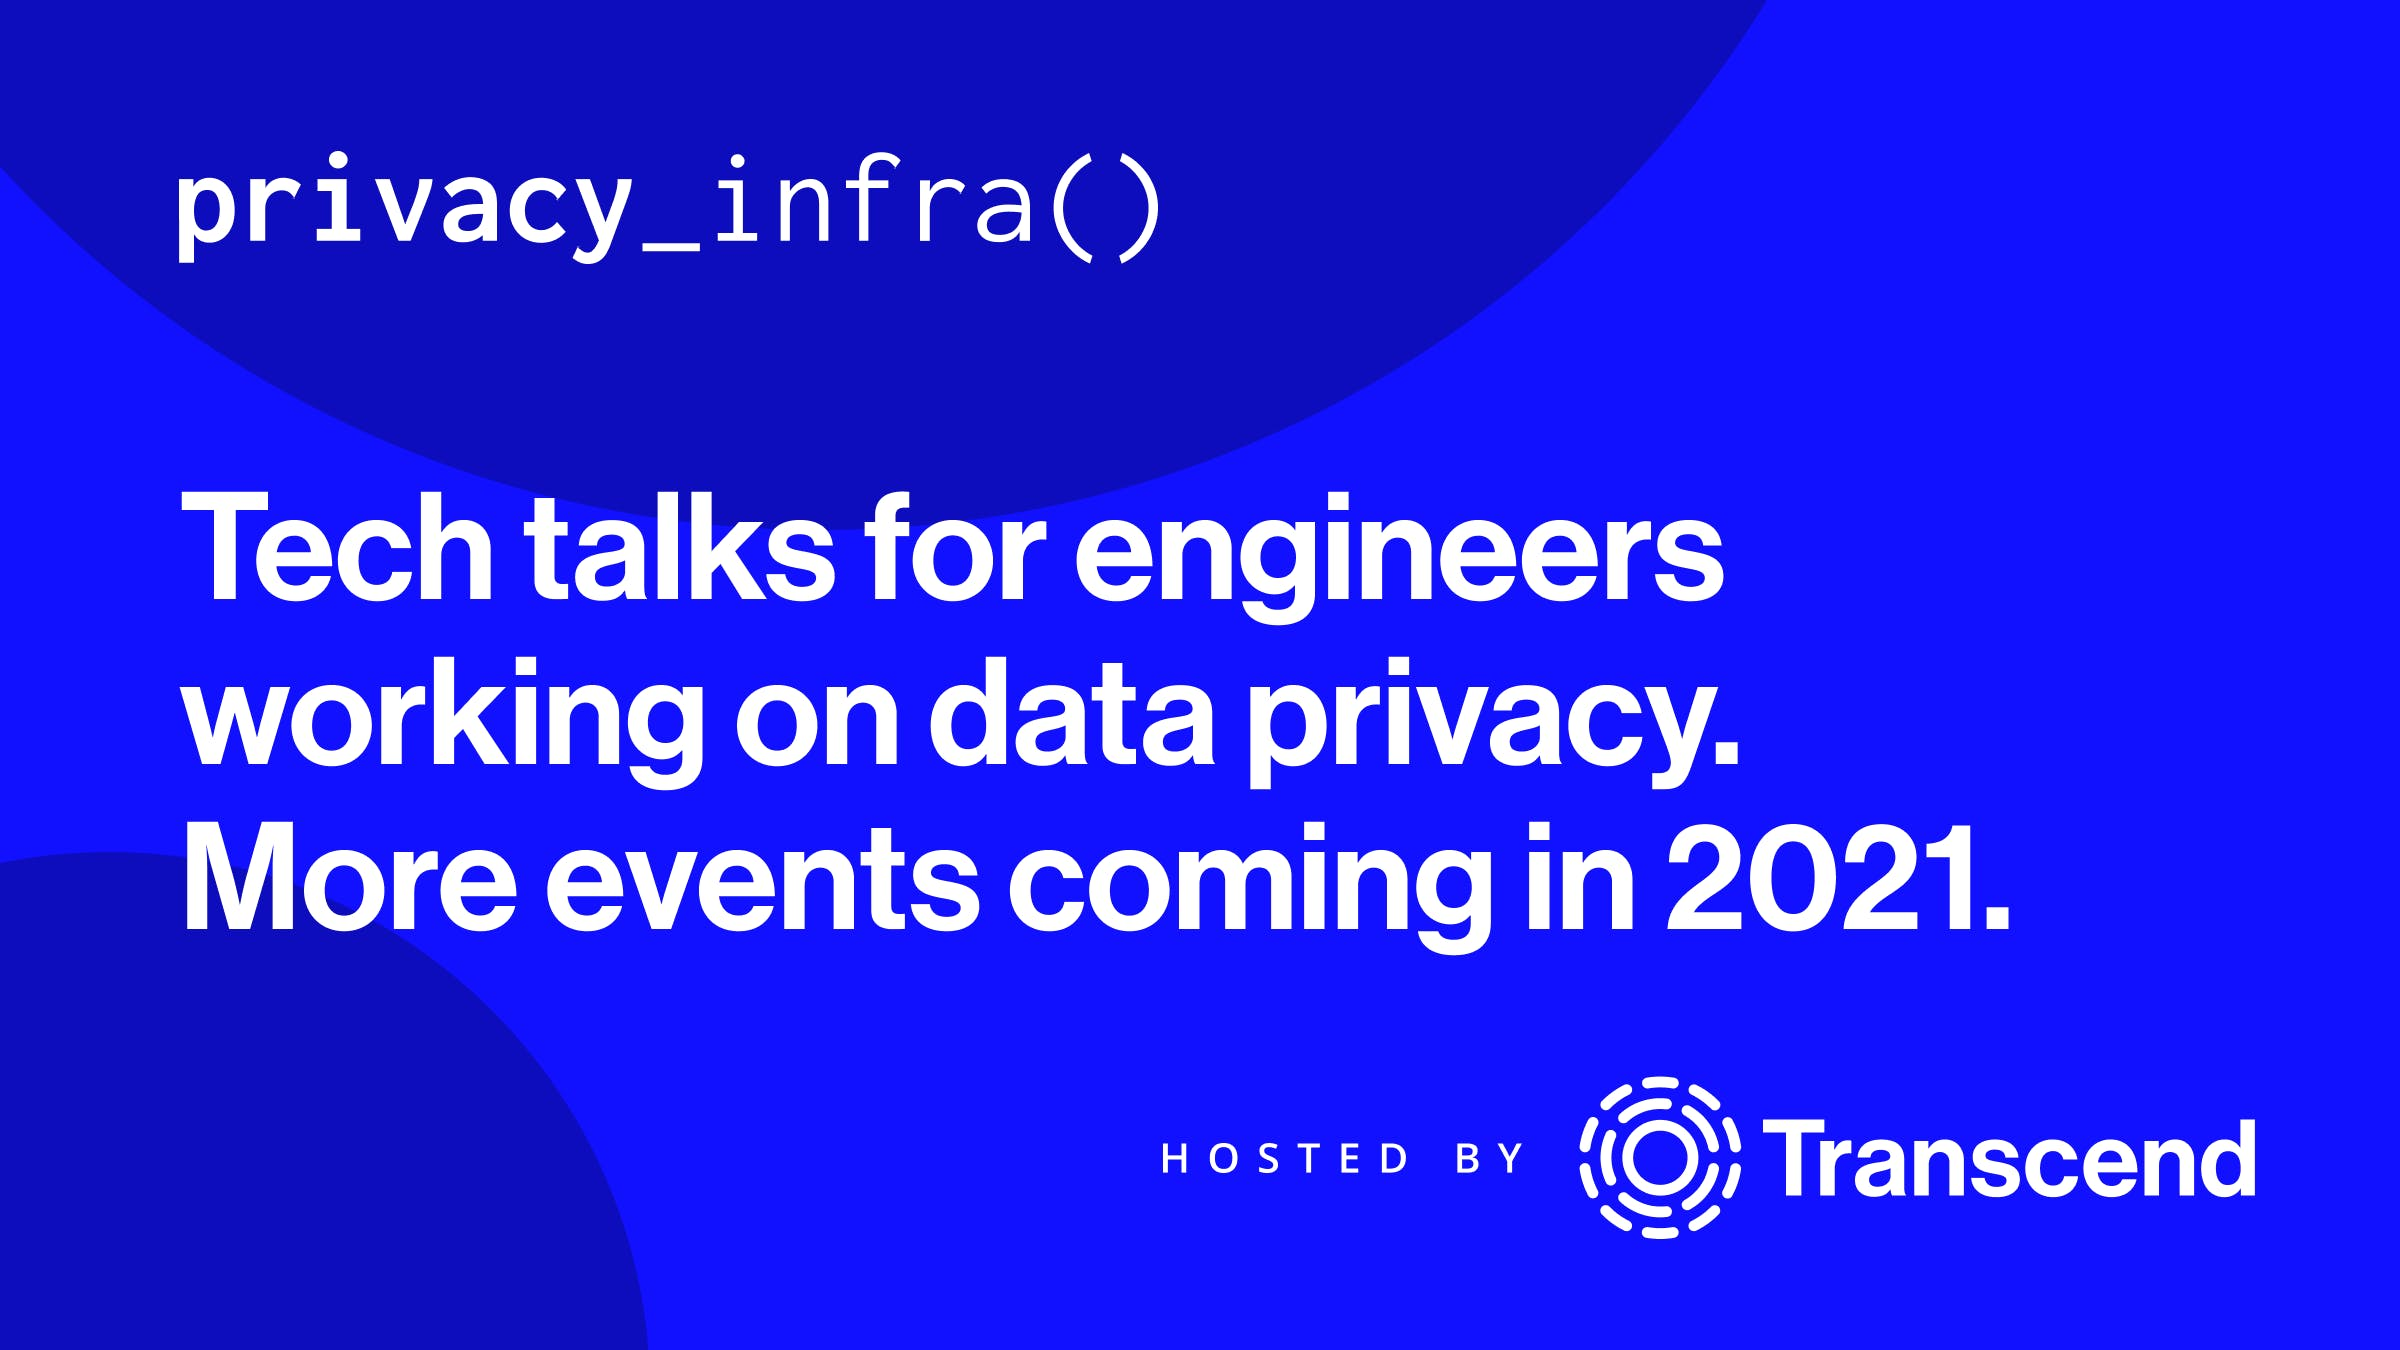 Text: Tech talks for engineers working on data privacy. More events coming in 2021.